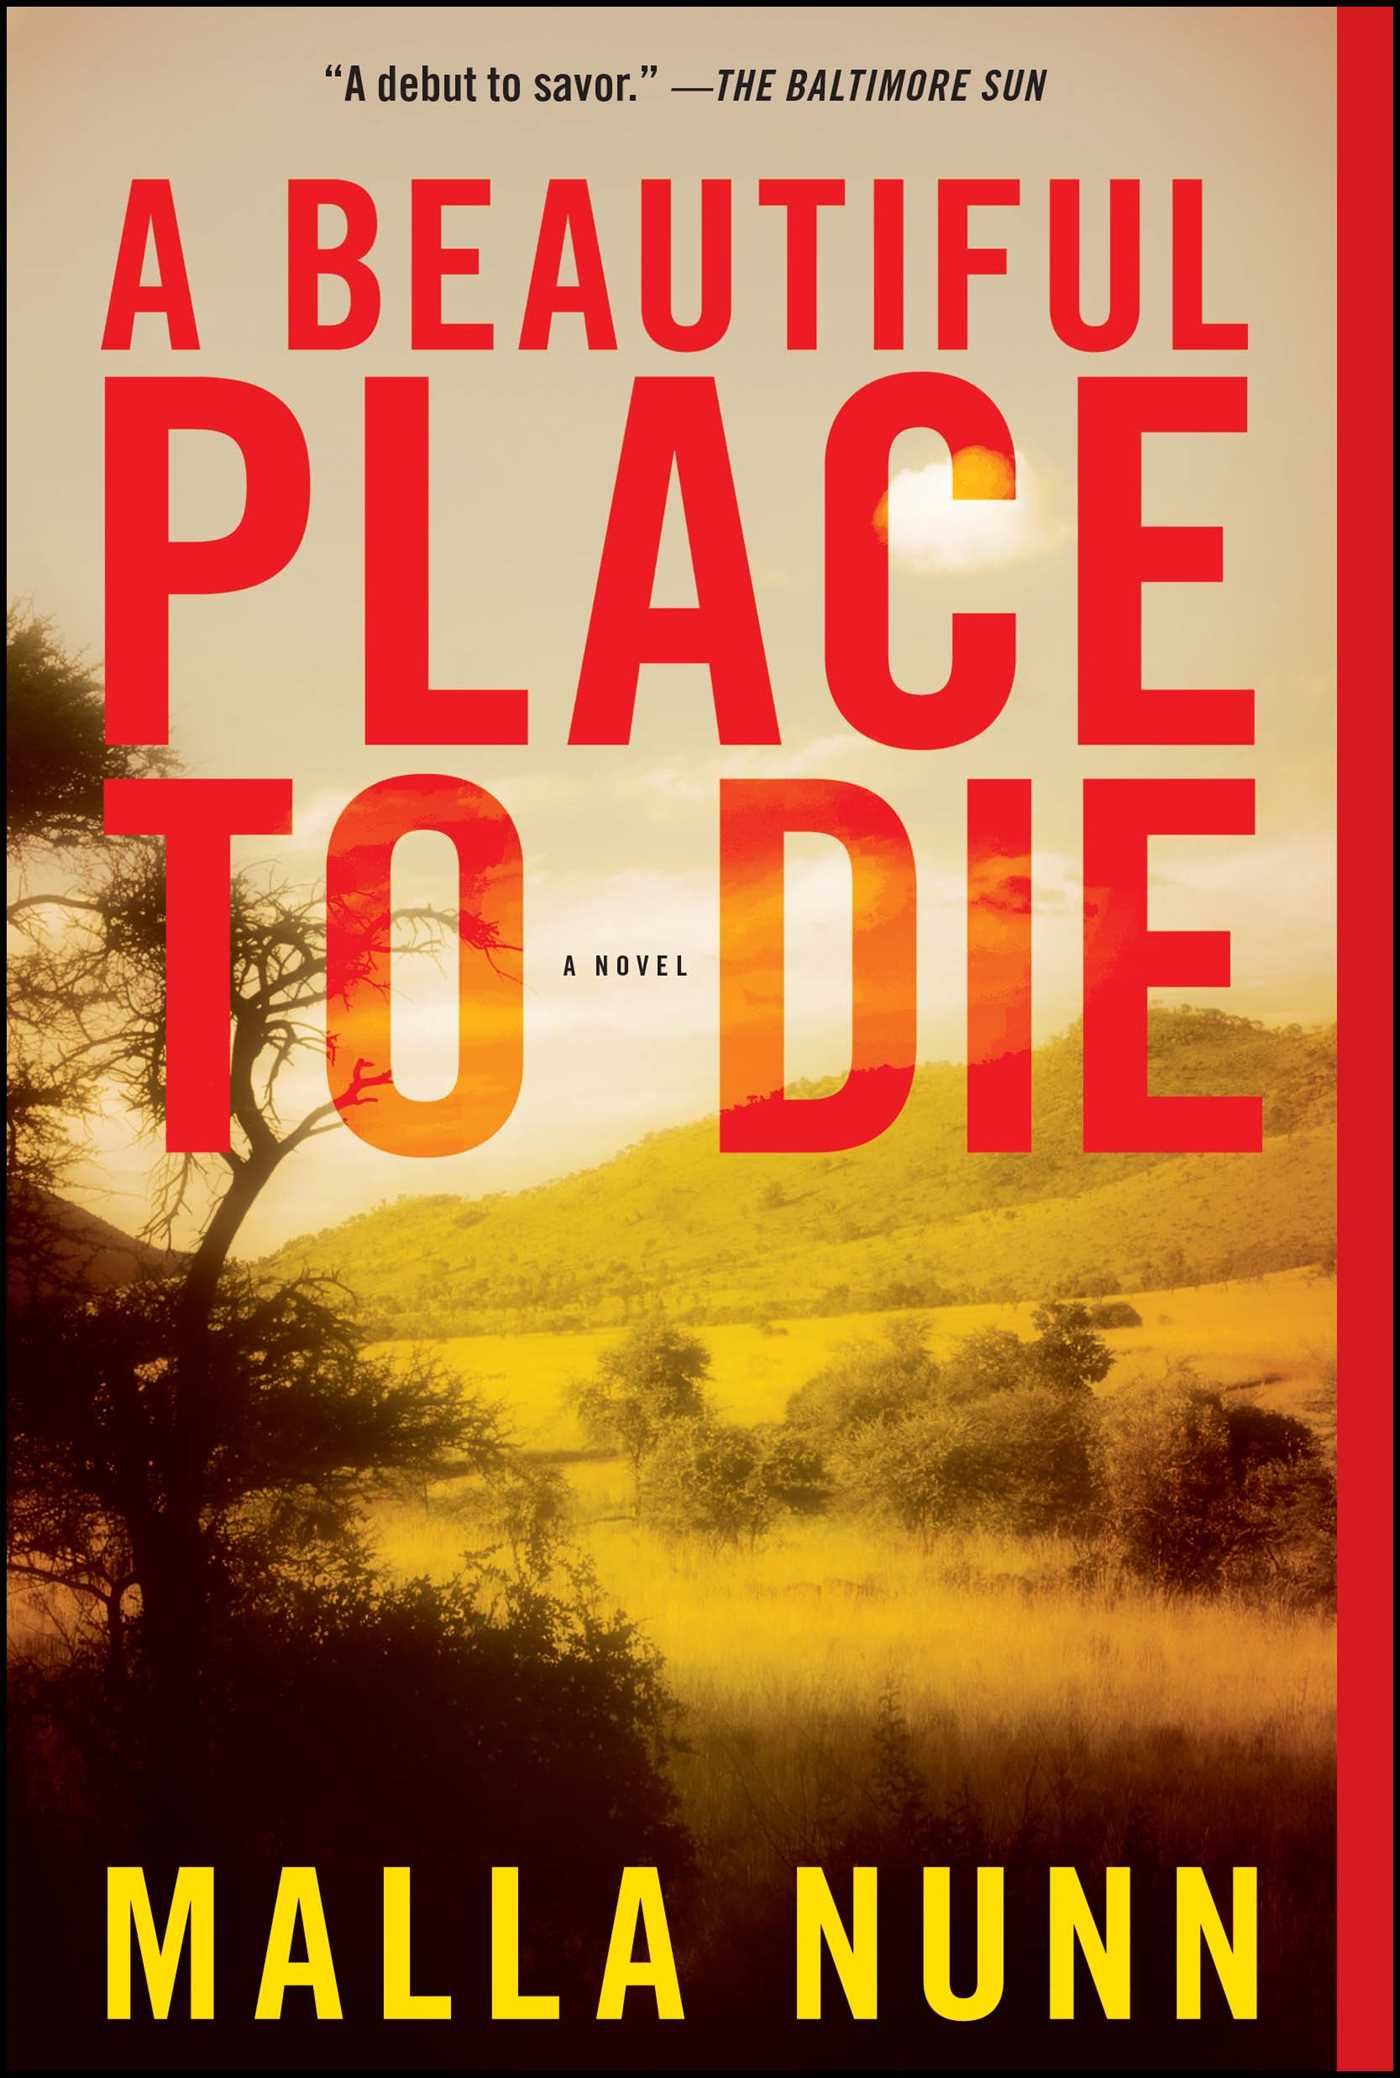 A beautiful place to die 9781416586210 hr